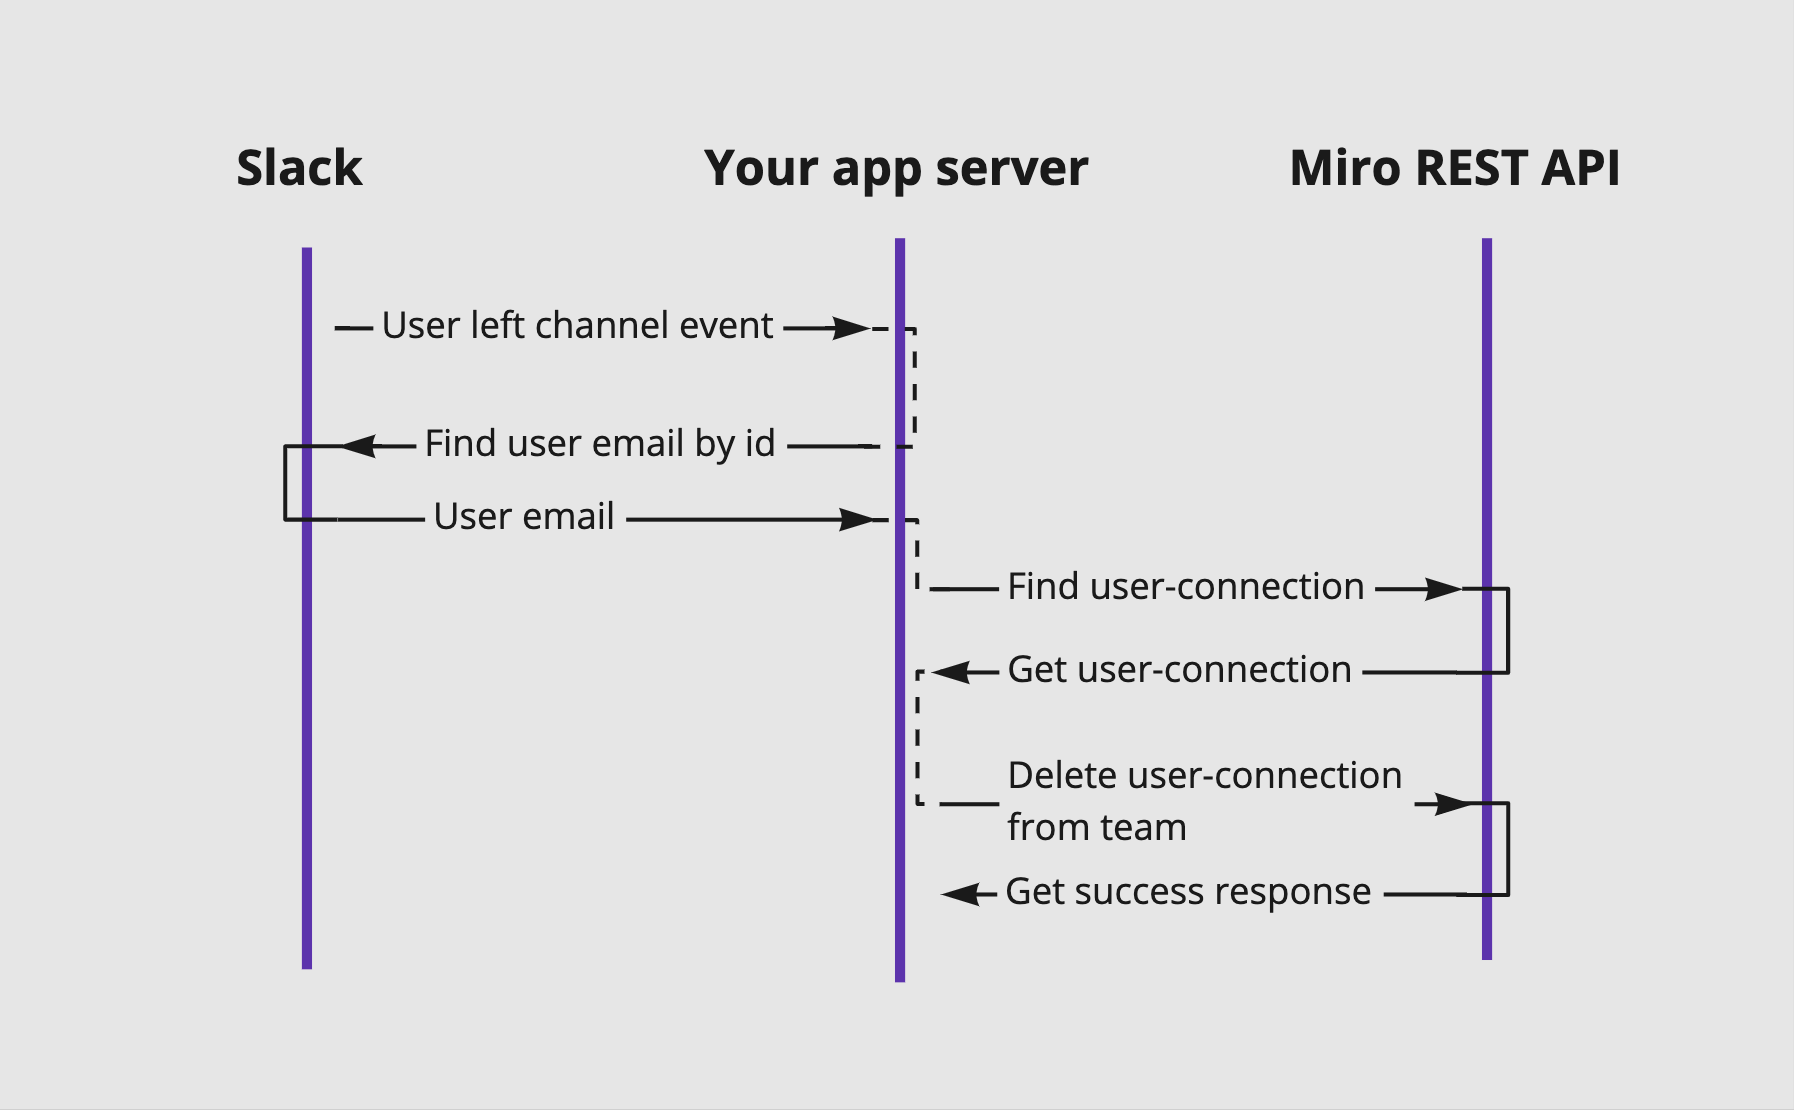 Case 2: Remove from Miro users that left Slack channel